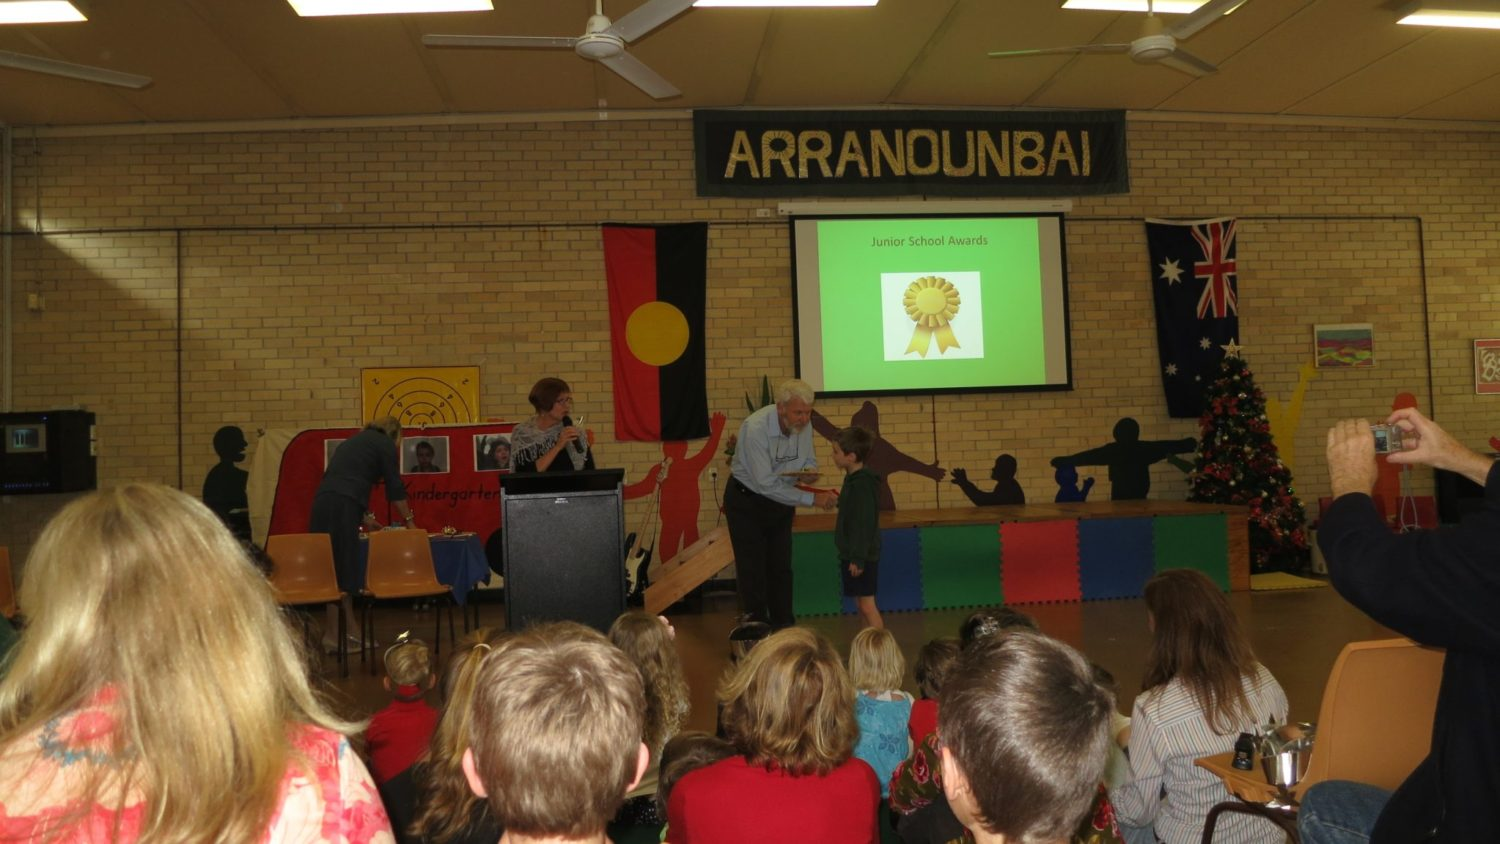 Arranounbai School Presentation